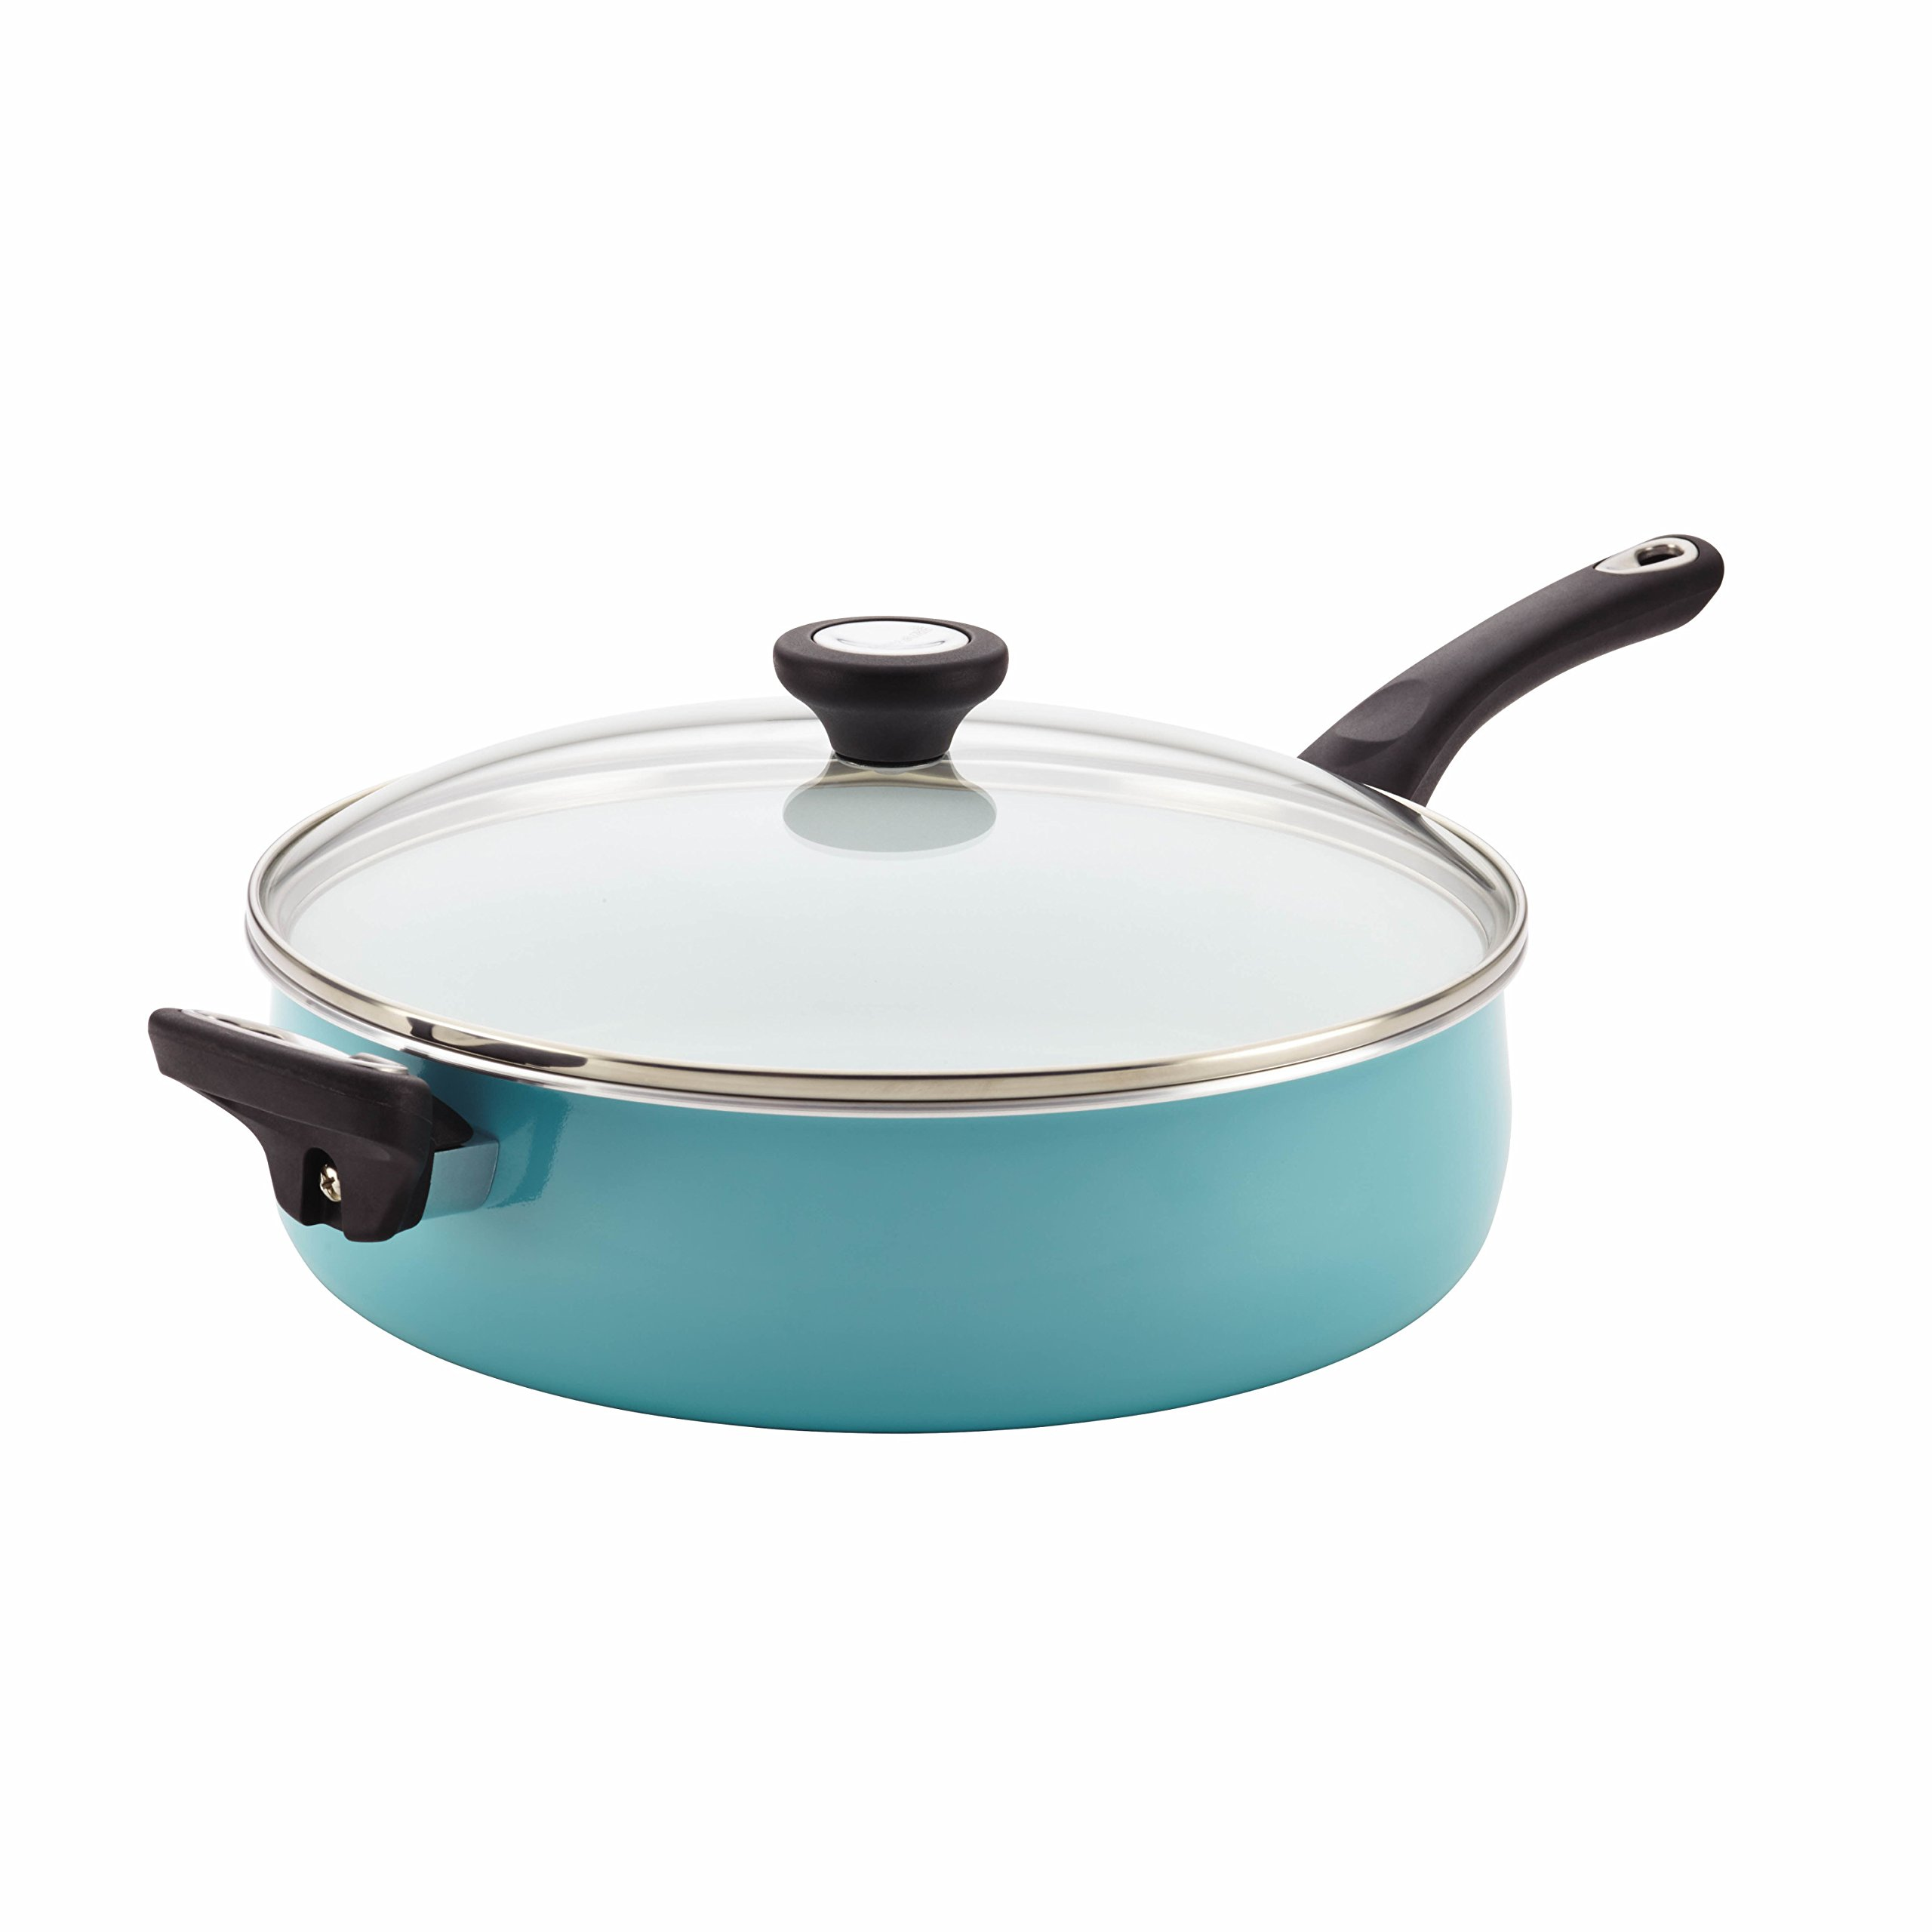 Farberware PURECOOK Ceramic Nonstick Cookware 5-Quart Covered Jumbo Cooker with Helper Handle, Aqua by Farberware (Image #1)